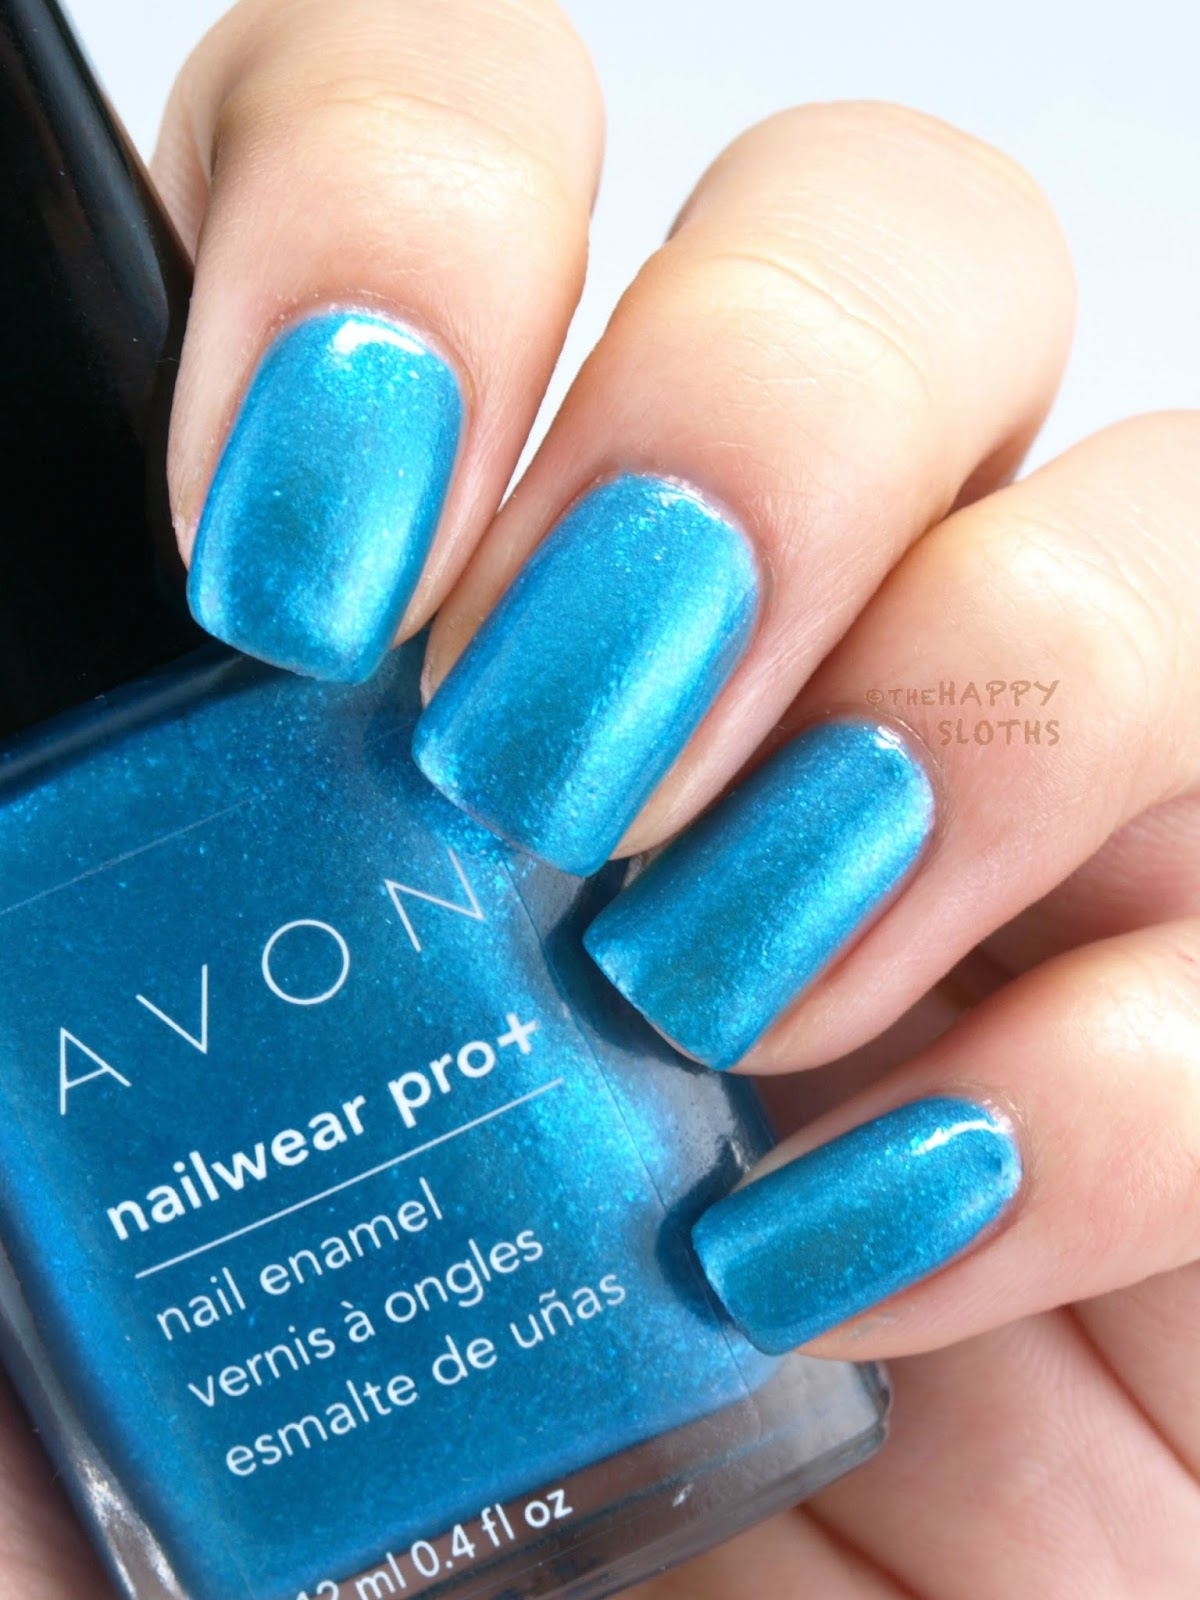 Avon Electric Shades Collection Nailwear Pro+ Nail Enamel: Review and Swatches